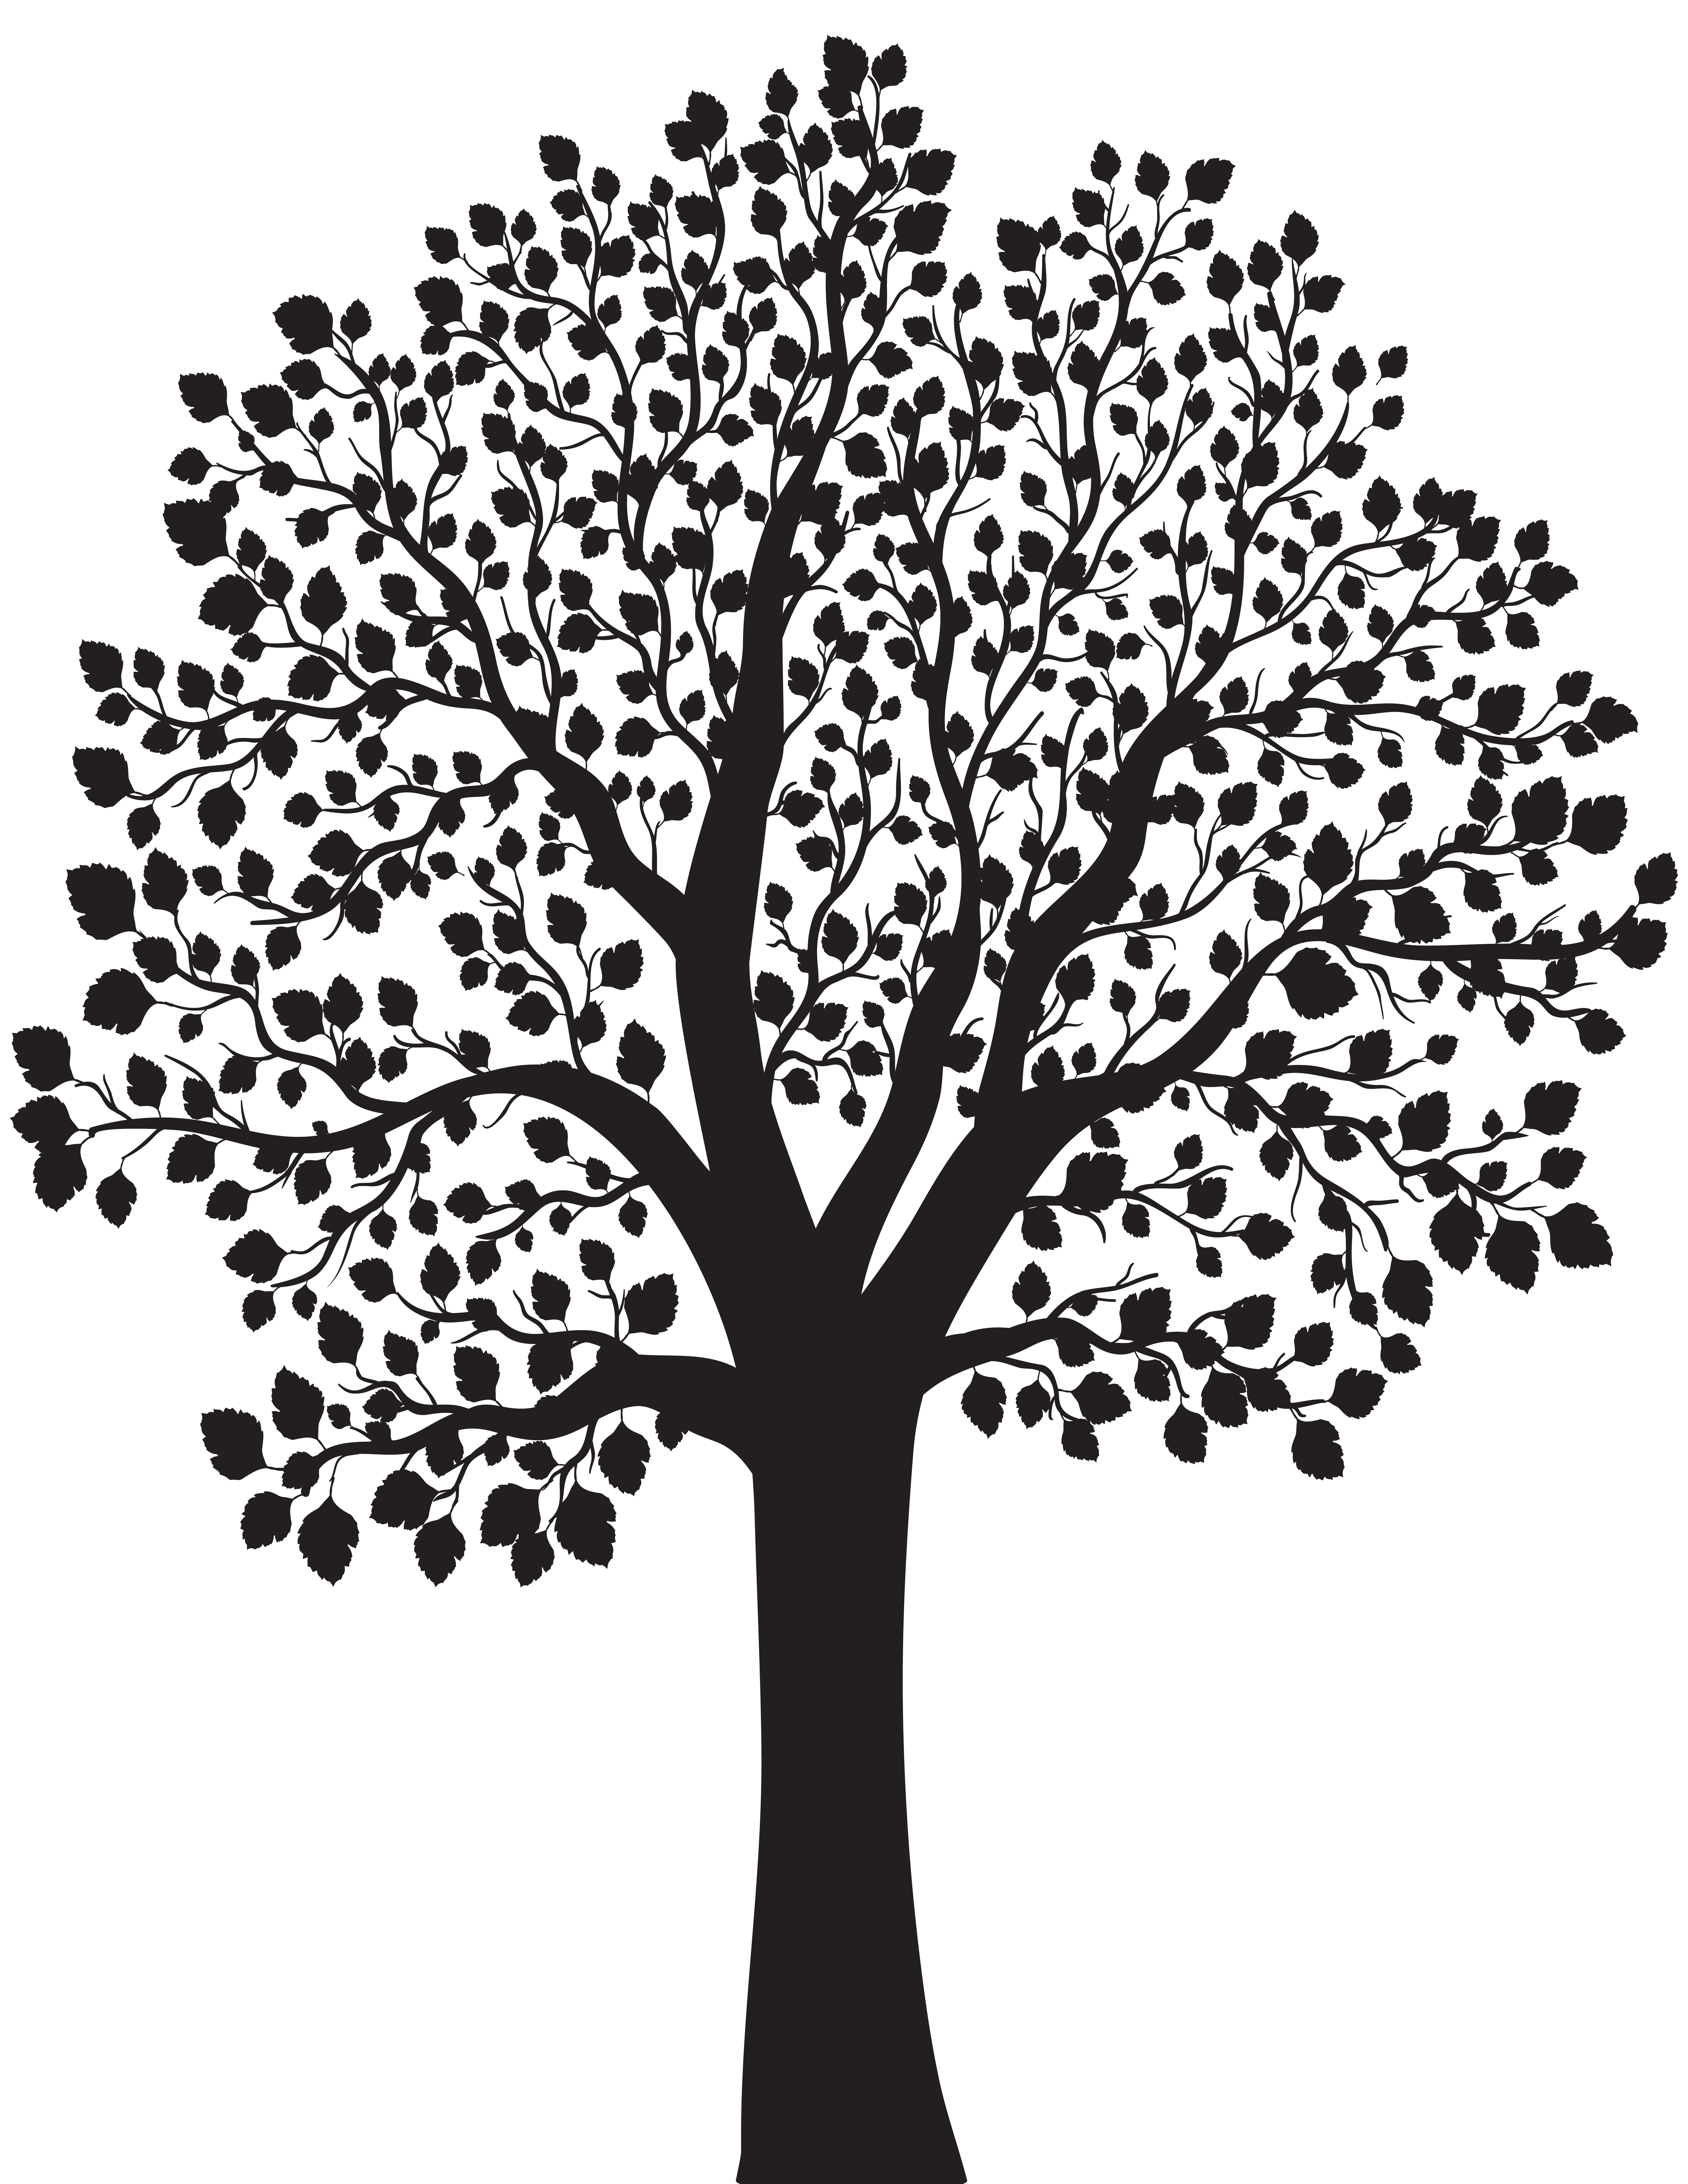 Tree silhouette png.